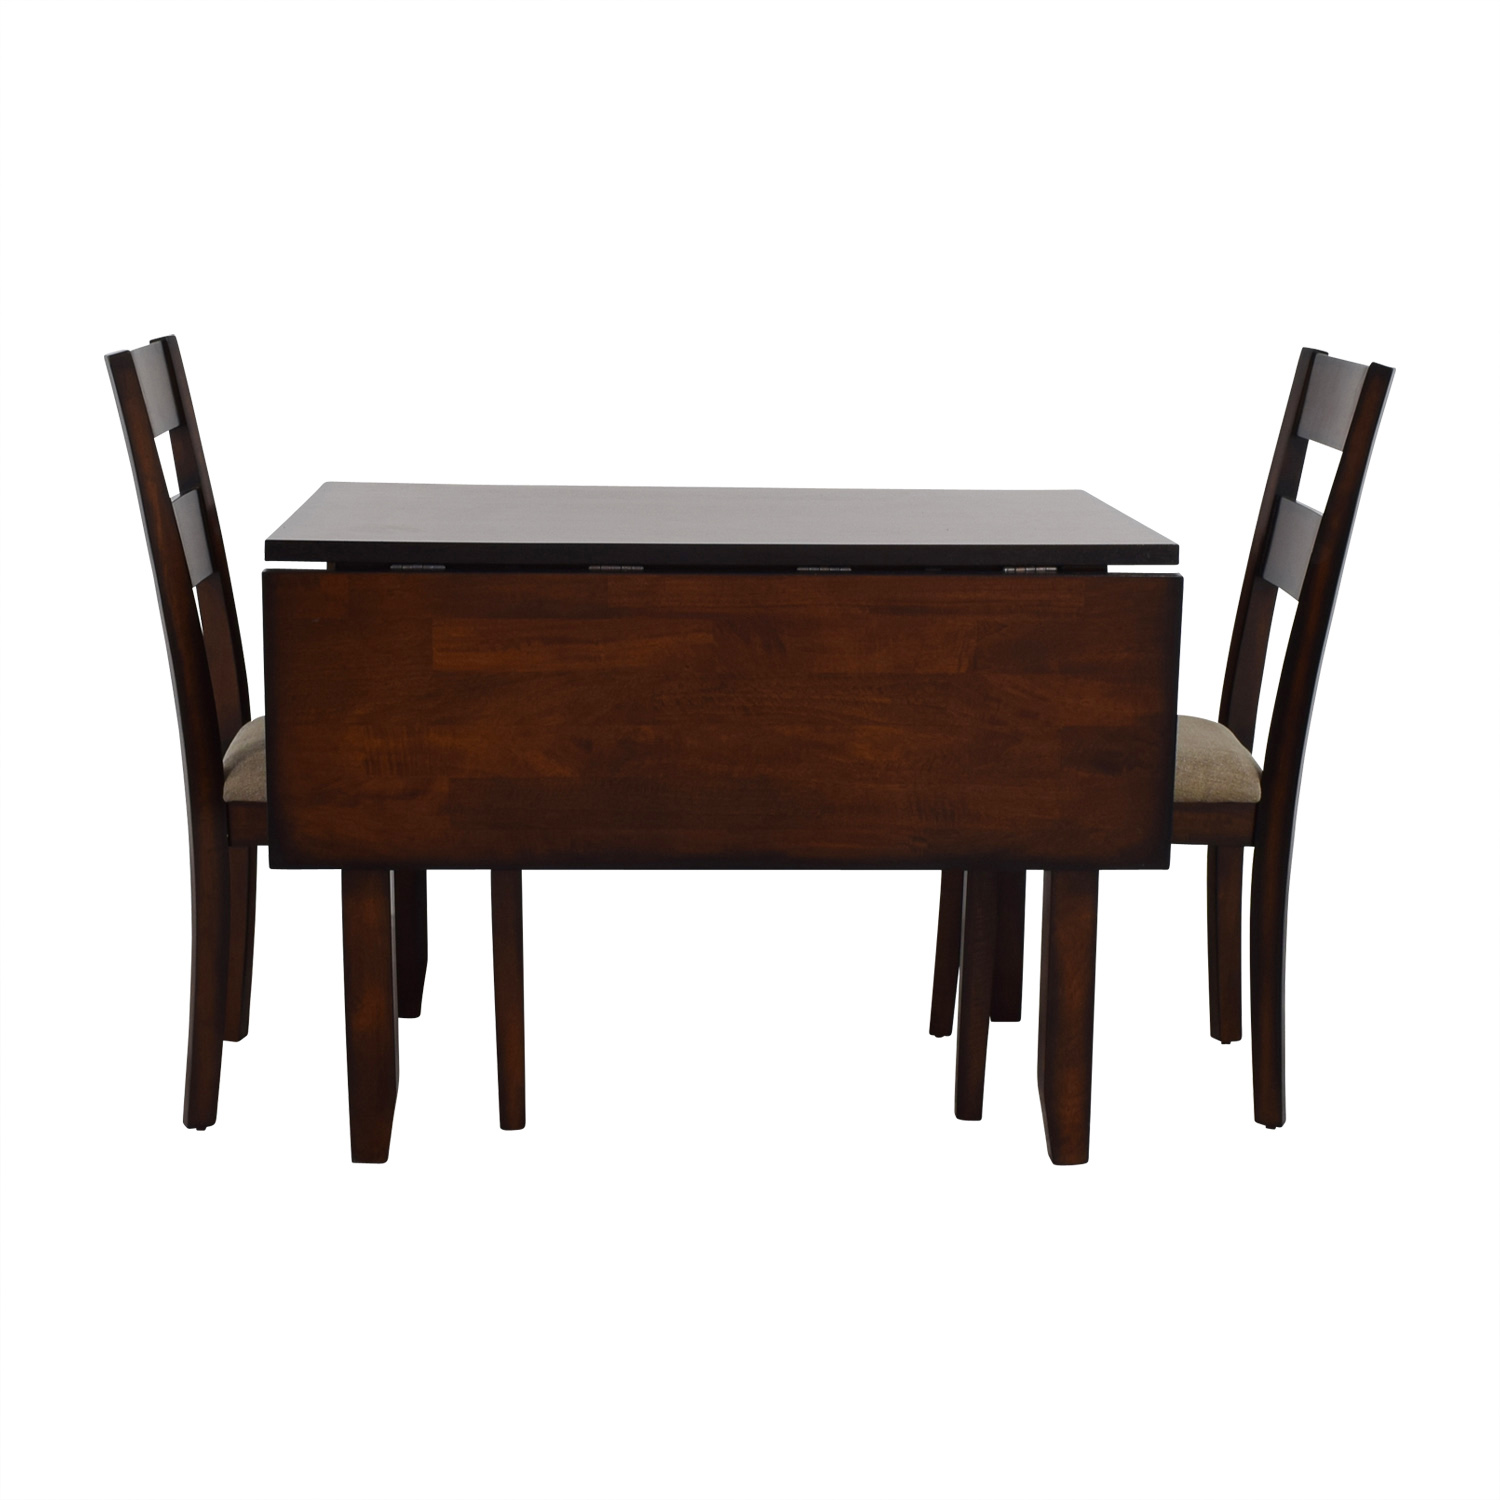 IFM IFM Drop Leaf Table with Two Chairs discount